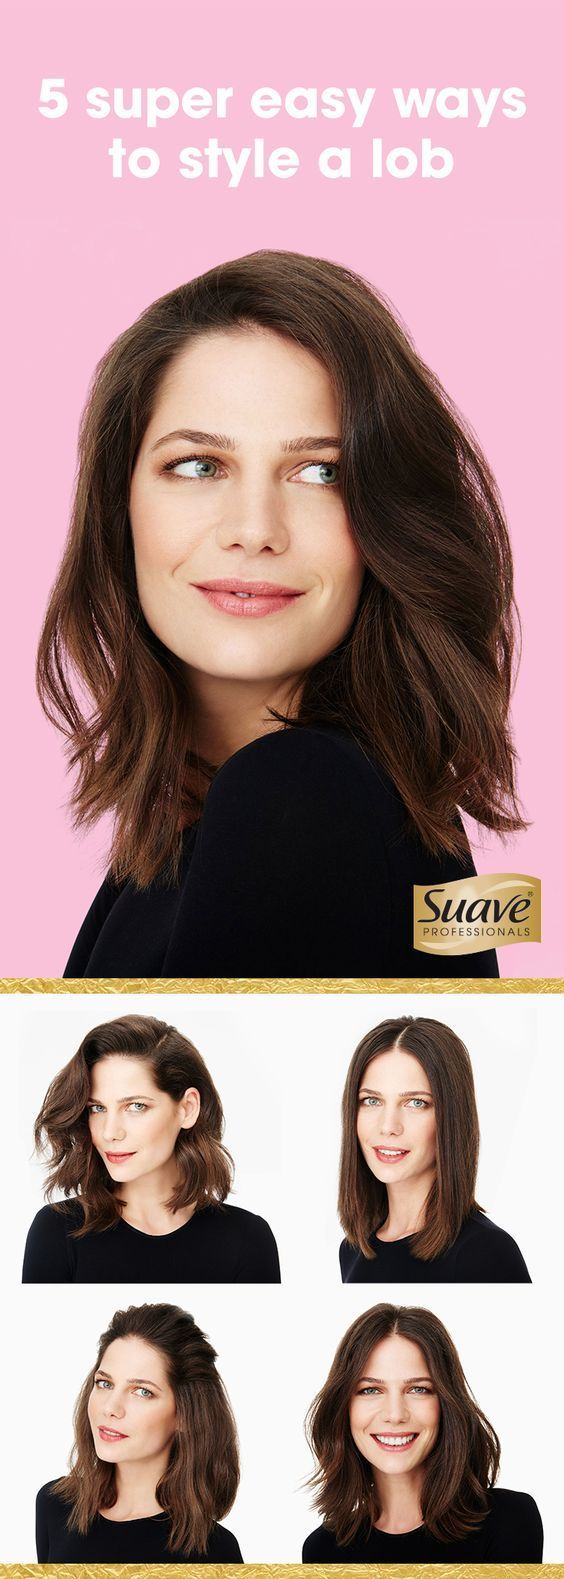 you're feeling bored with your usual hairstyle but just don't want to go through all the expense and hassle of visiting the stylist, we have the perfect post for you. Japanese beauty site 'Kamimado' has compiled 20 super simple and conveniently quick hair styling ideas, each having an easy to follow pictured step-by-step tutorial. Ther...